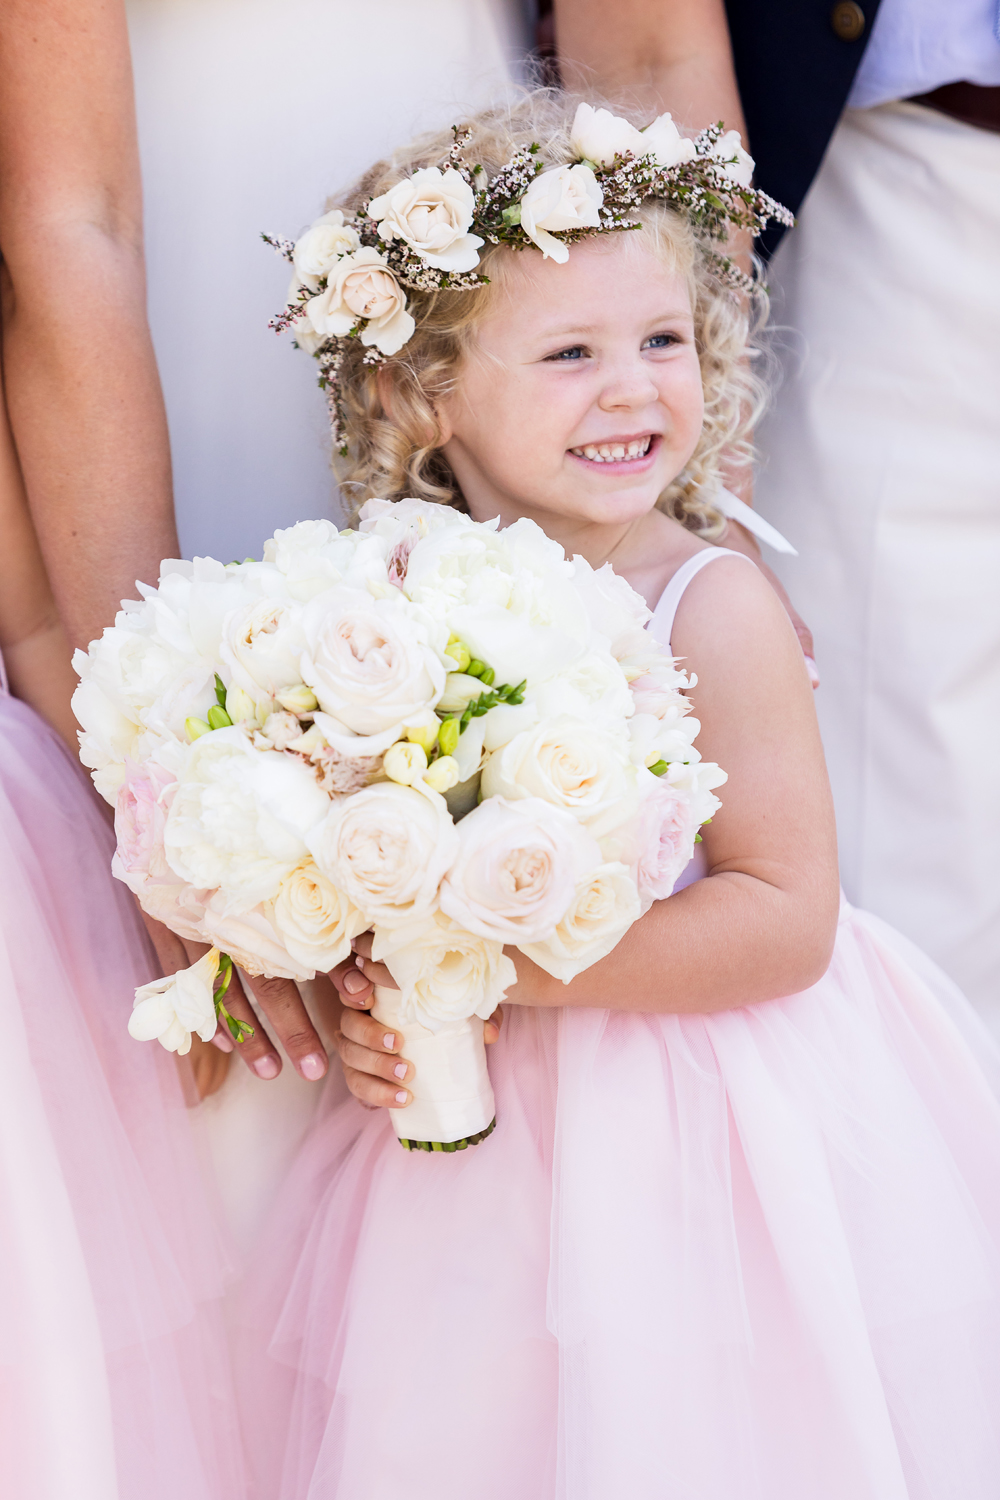 cute flower girl with curly hair with bridesmaids and bridal bouquet flower crown